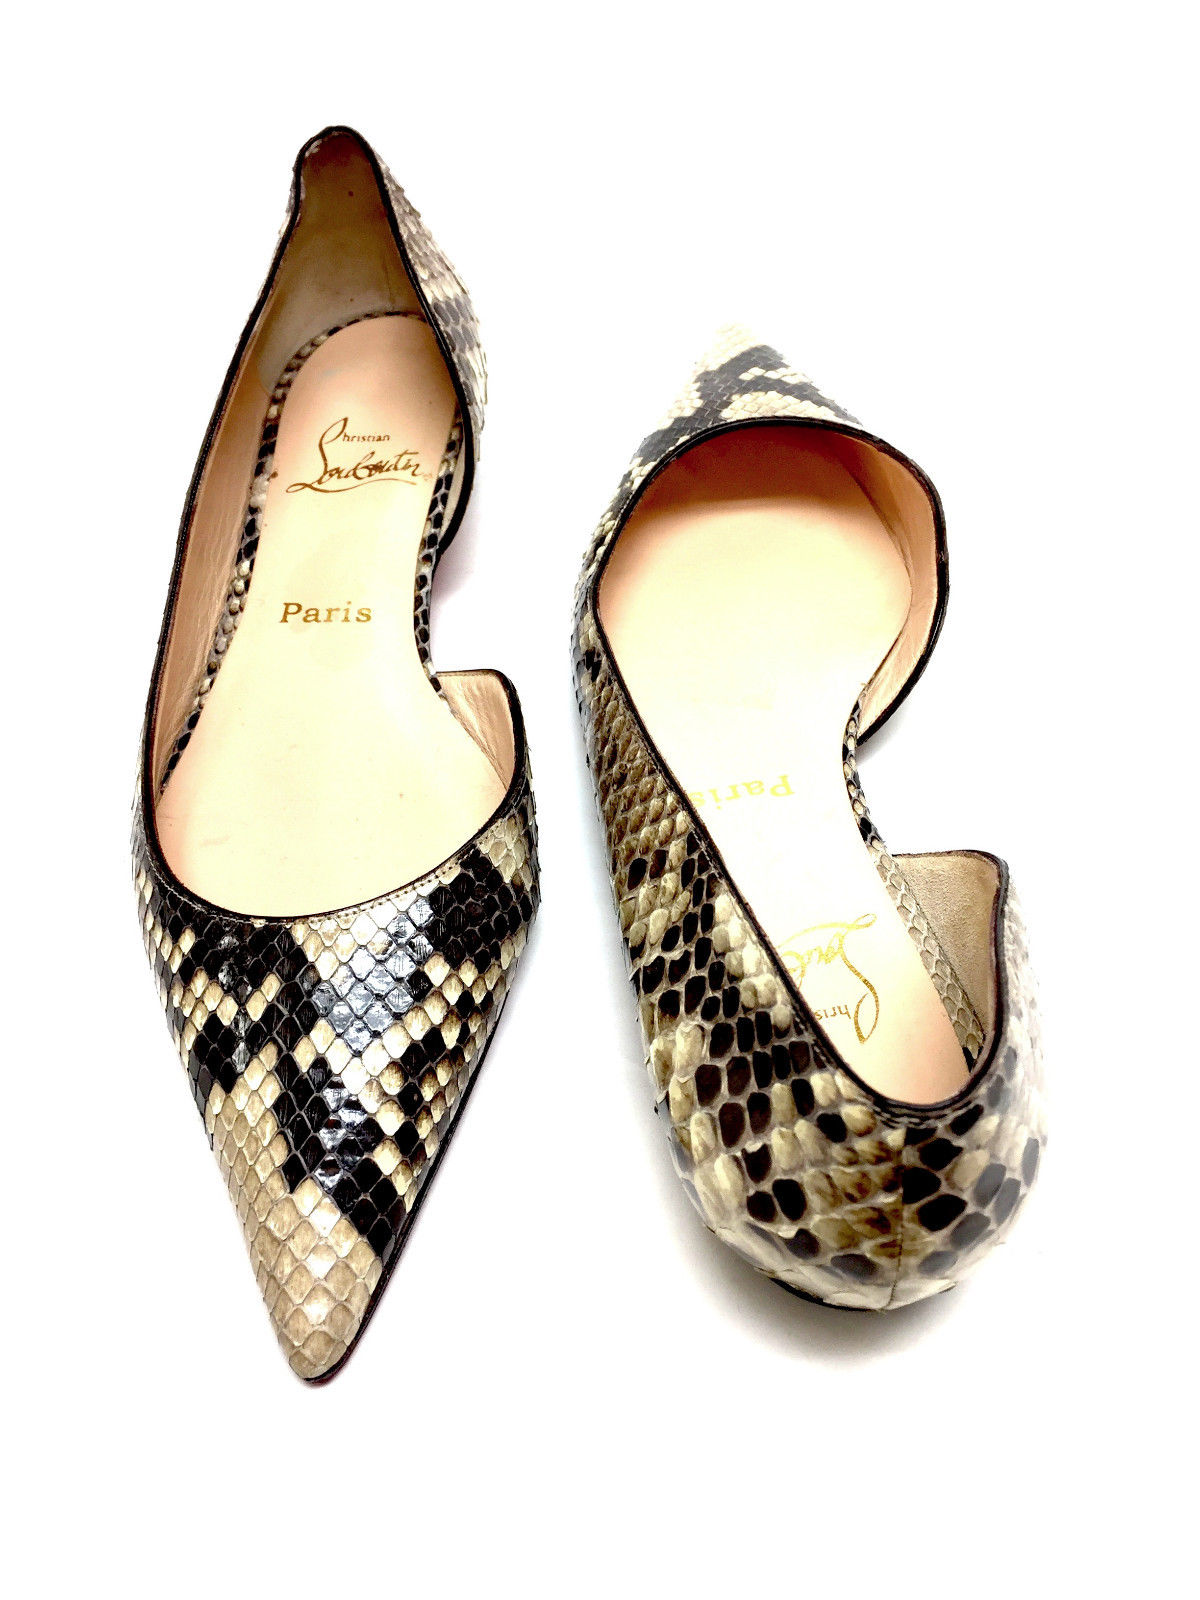 on sale 29a7a 992b8 CHRISTIAN LOUBOUTIN Brown/Beige Python Skin Flats Shoes Size: 40 /10